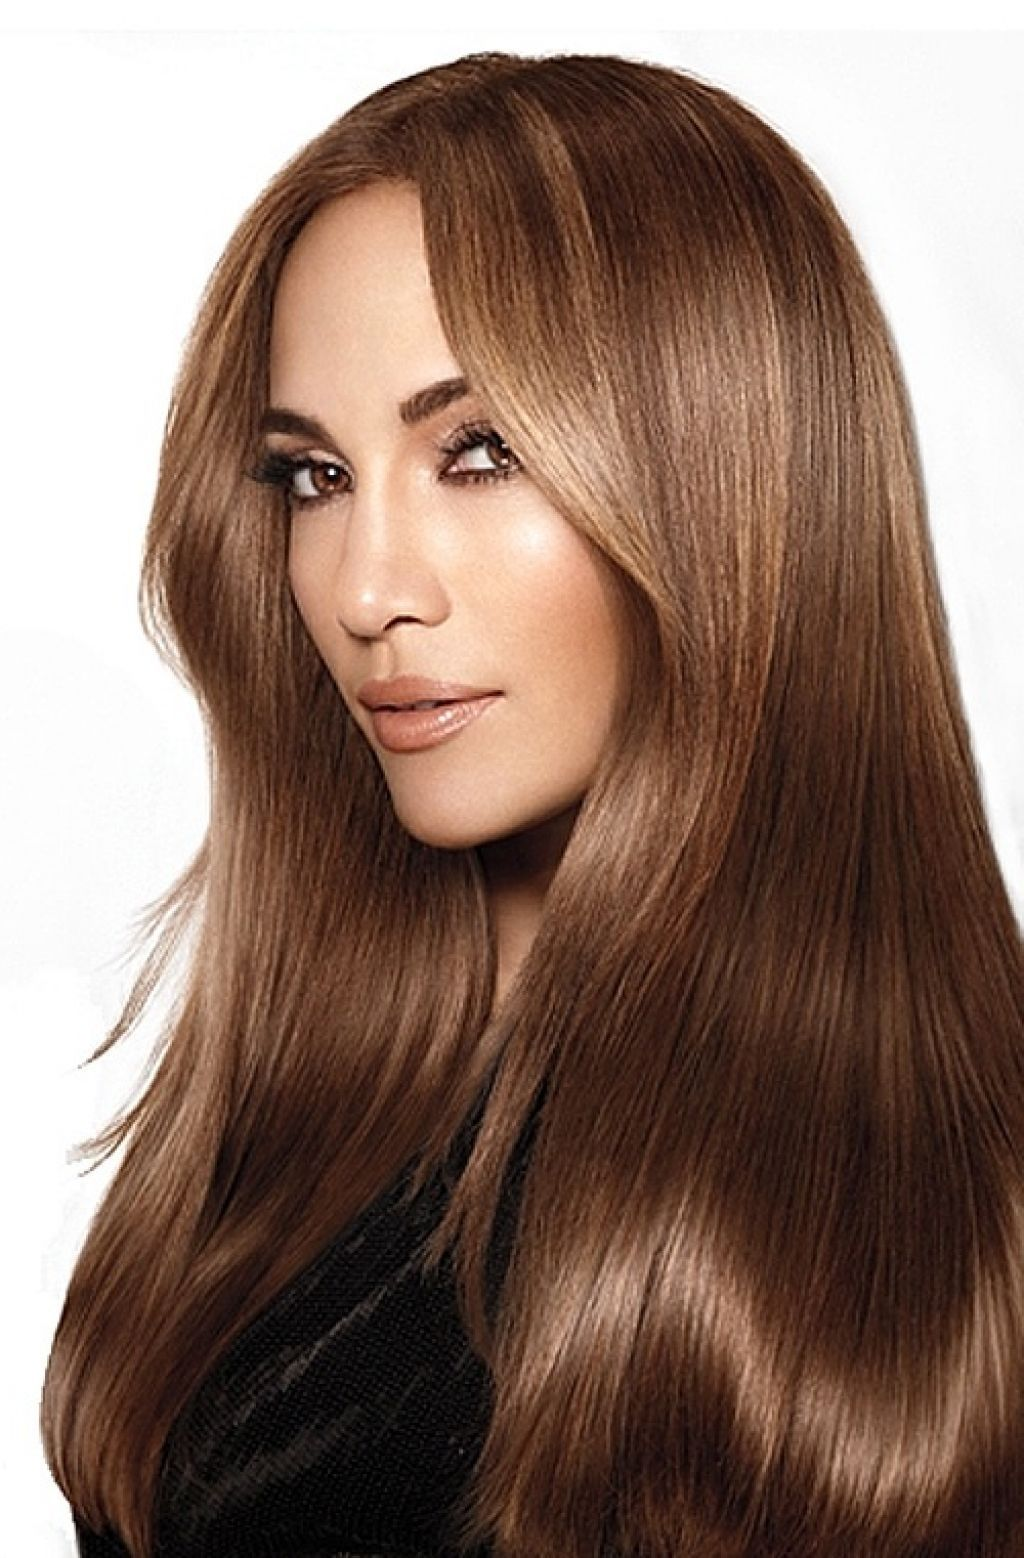 Medium Golden Brown Hair Color The Medium Golden Brown Hair Color Can Be Your Choice When Making Ab Golden Brown Hair Golden Brown Hair Color Brown Hair Colors